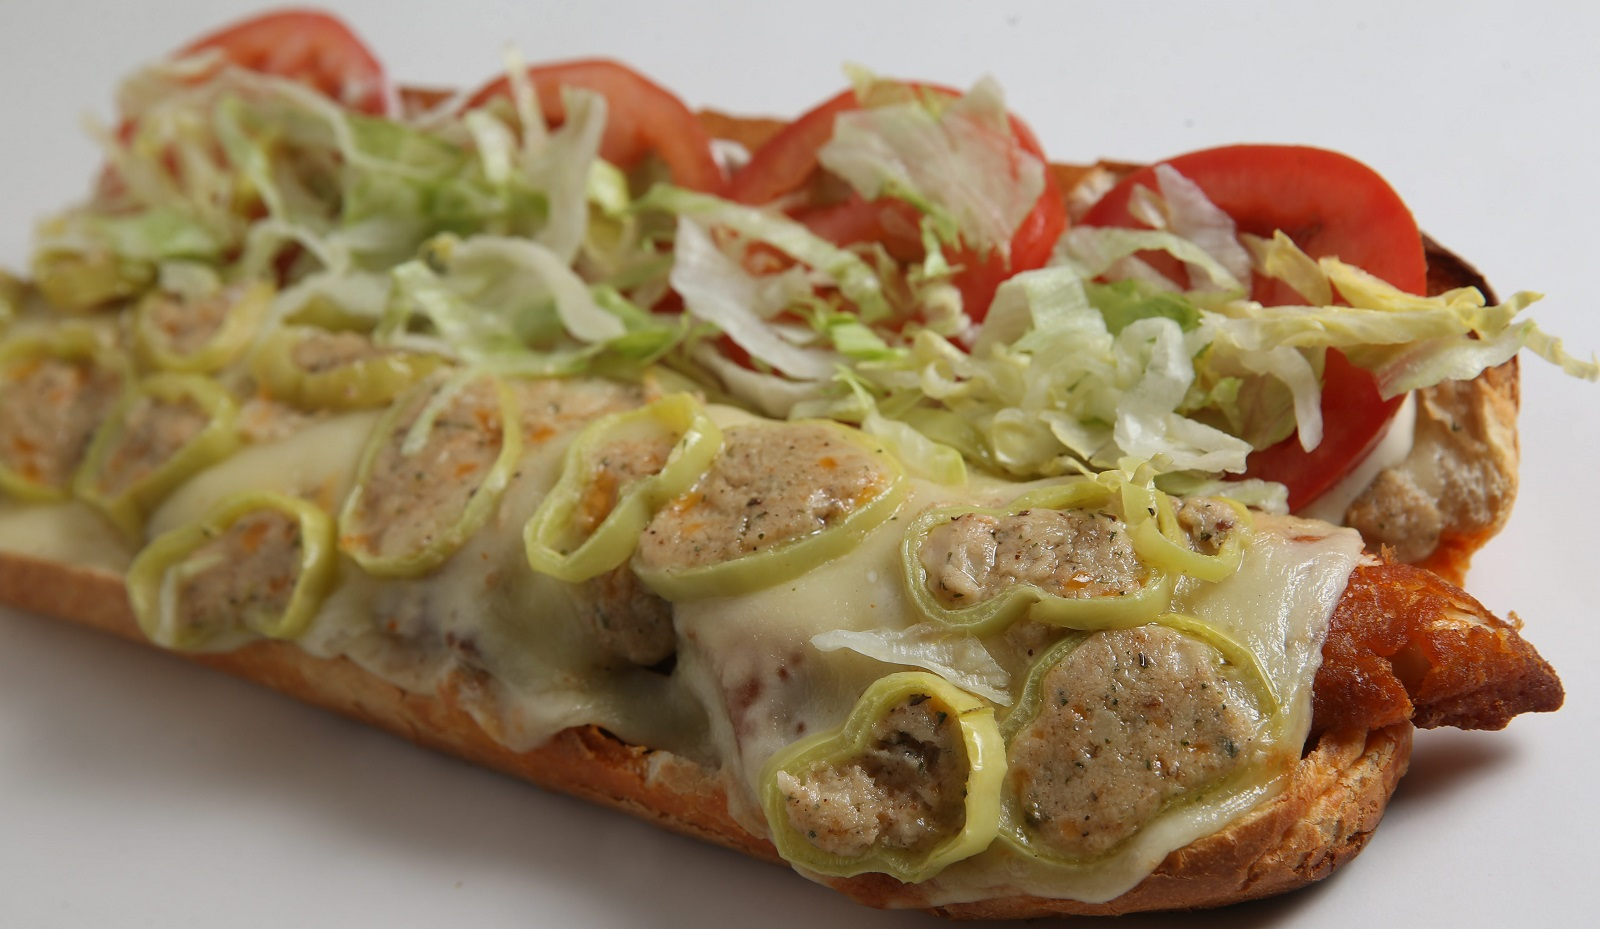 The Lovejoy Street chicken finger sub with sliced stuffed peppers, mozzarella, tomato, lettuce, onion with mayo or blue cheese dressing from Lovejoy Pizza. (Sharon Cantillon/Buffalo News)